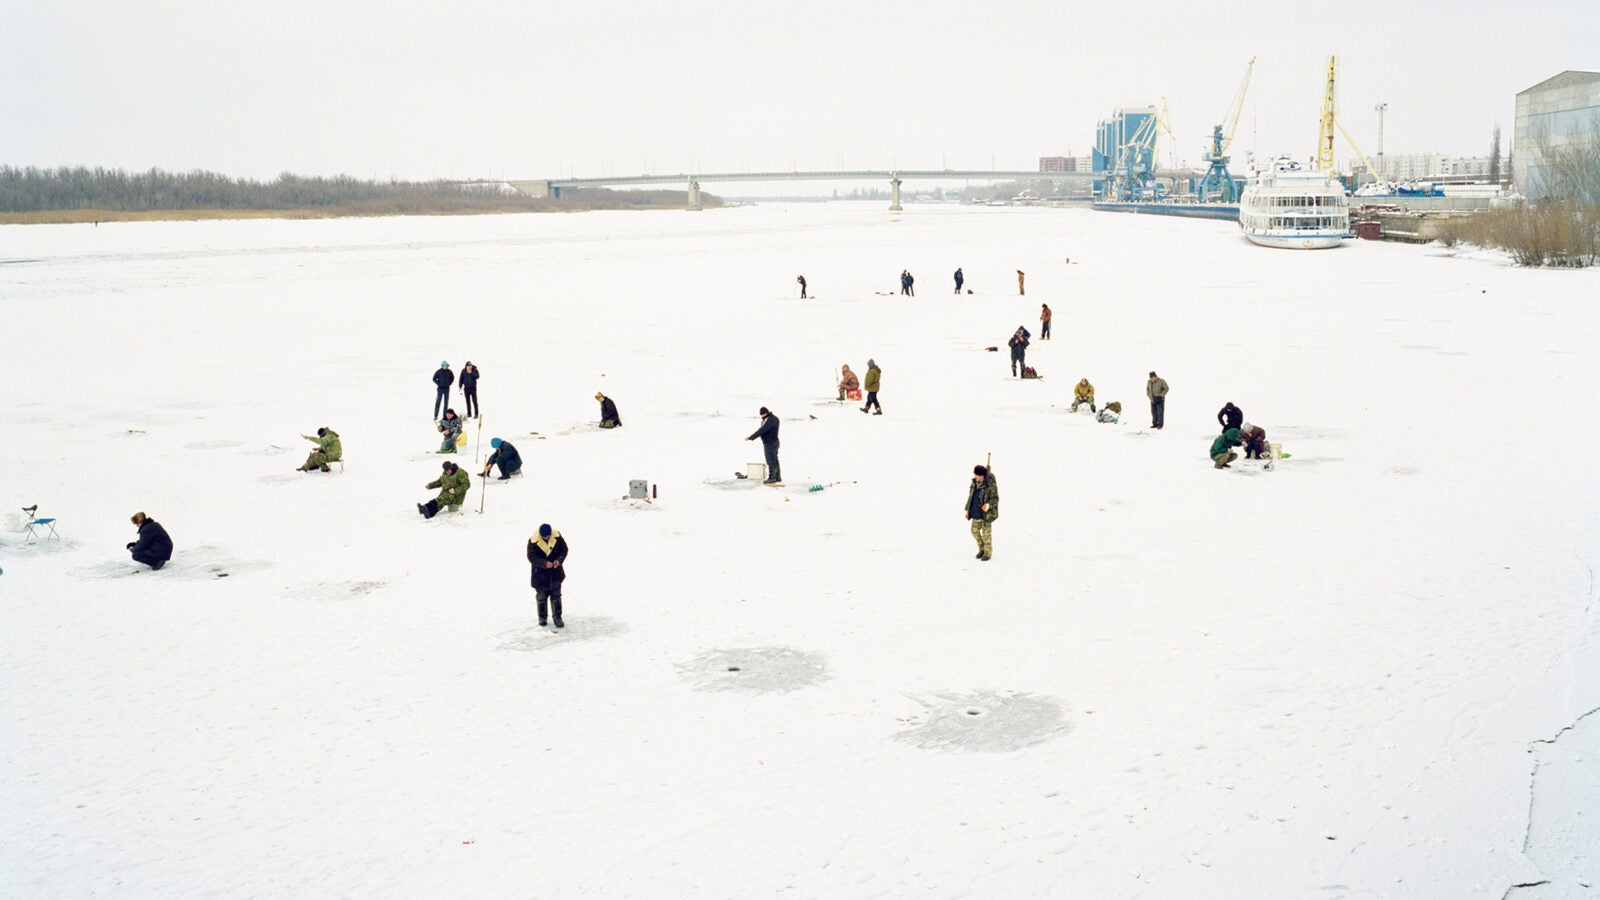 Fishermen cut holes in frozen river on the outskirts of the city, Astrakhan, Russia.